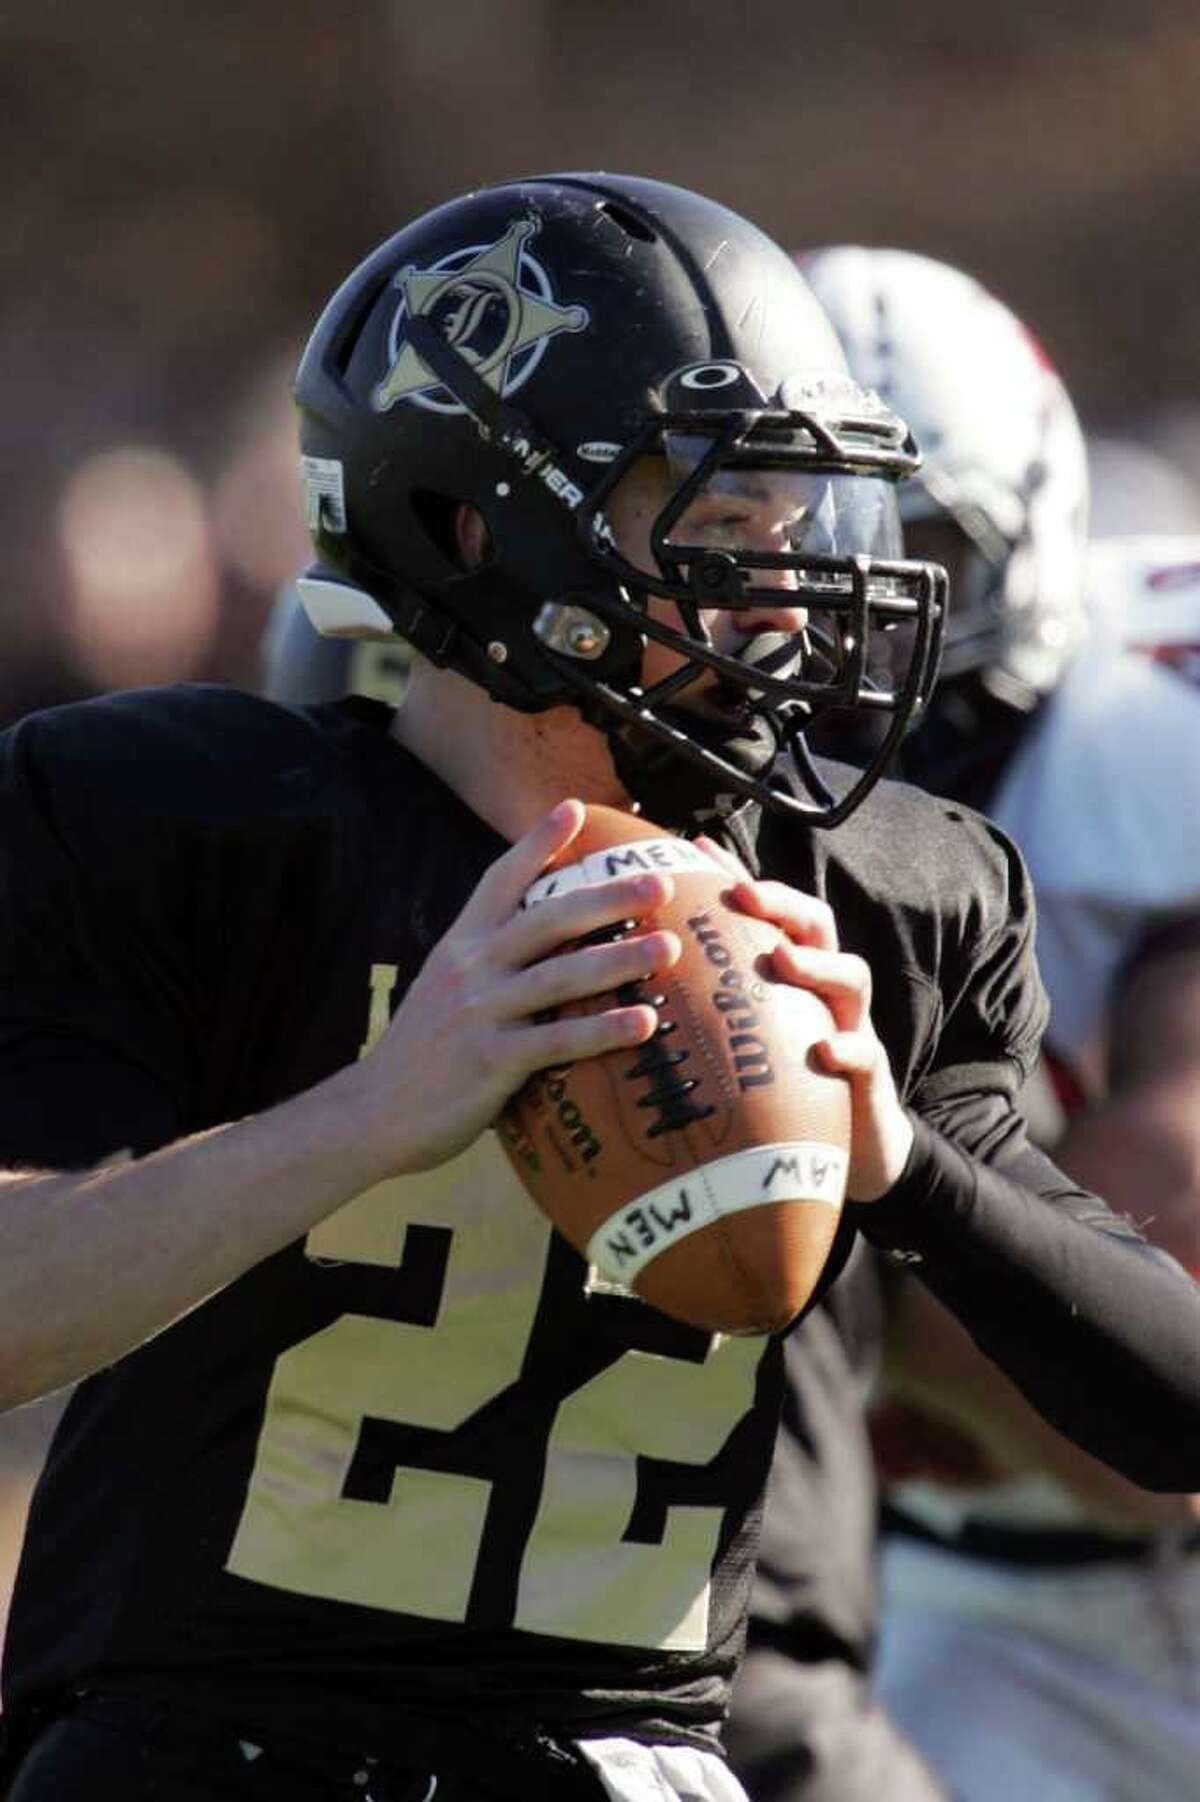 Jonathan Law High School's quarterback # 22 Timmy Maher looks down field during Thursday Thanksgiving Day Match-up against Foran High School. Foran High School would win 48-13.